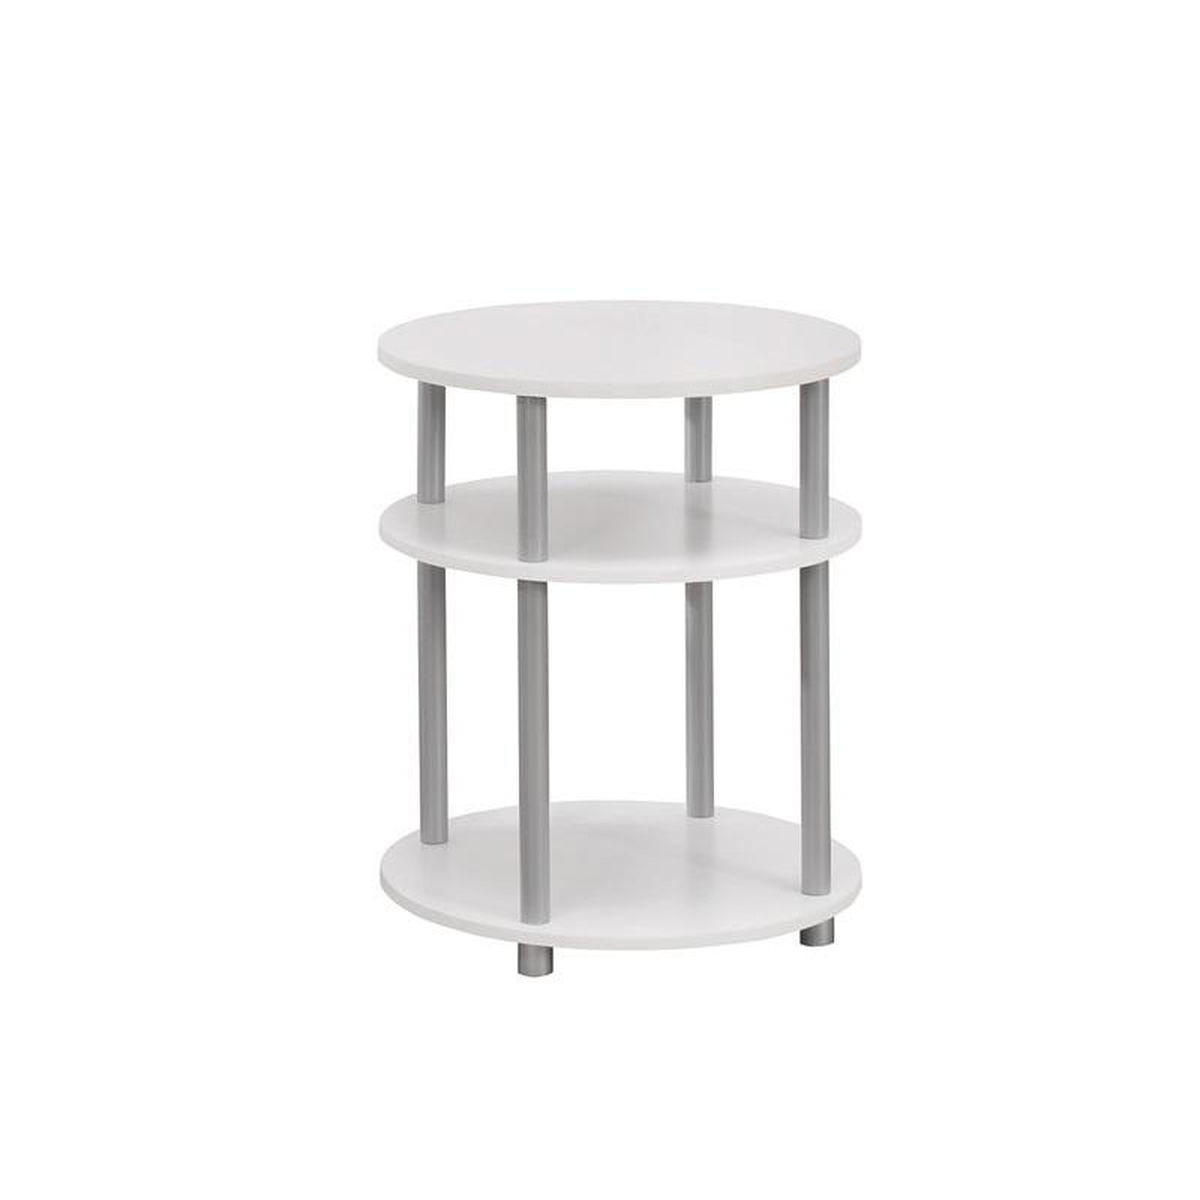 round white accent table bizchair monarch specialties msp main silver our open concept diameter with black wood side room essentials designer bedside lamps wooden mats wyatt